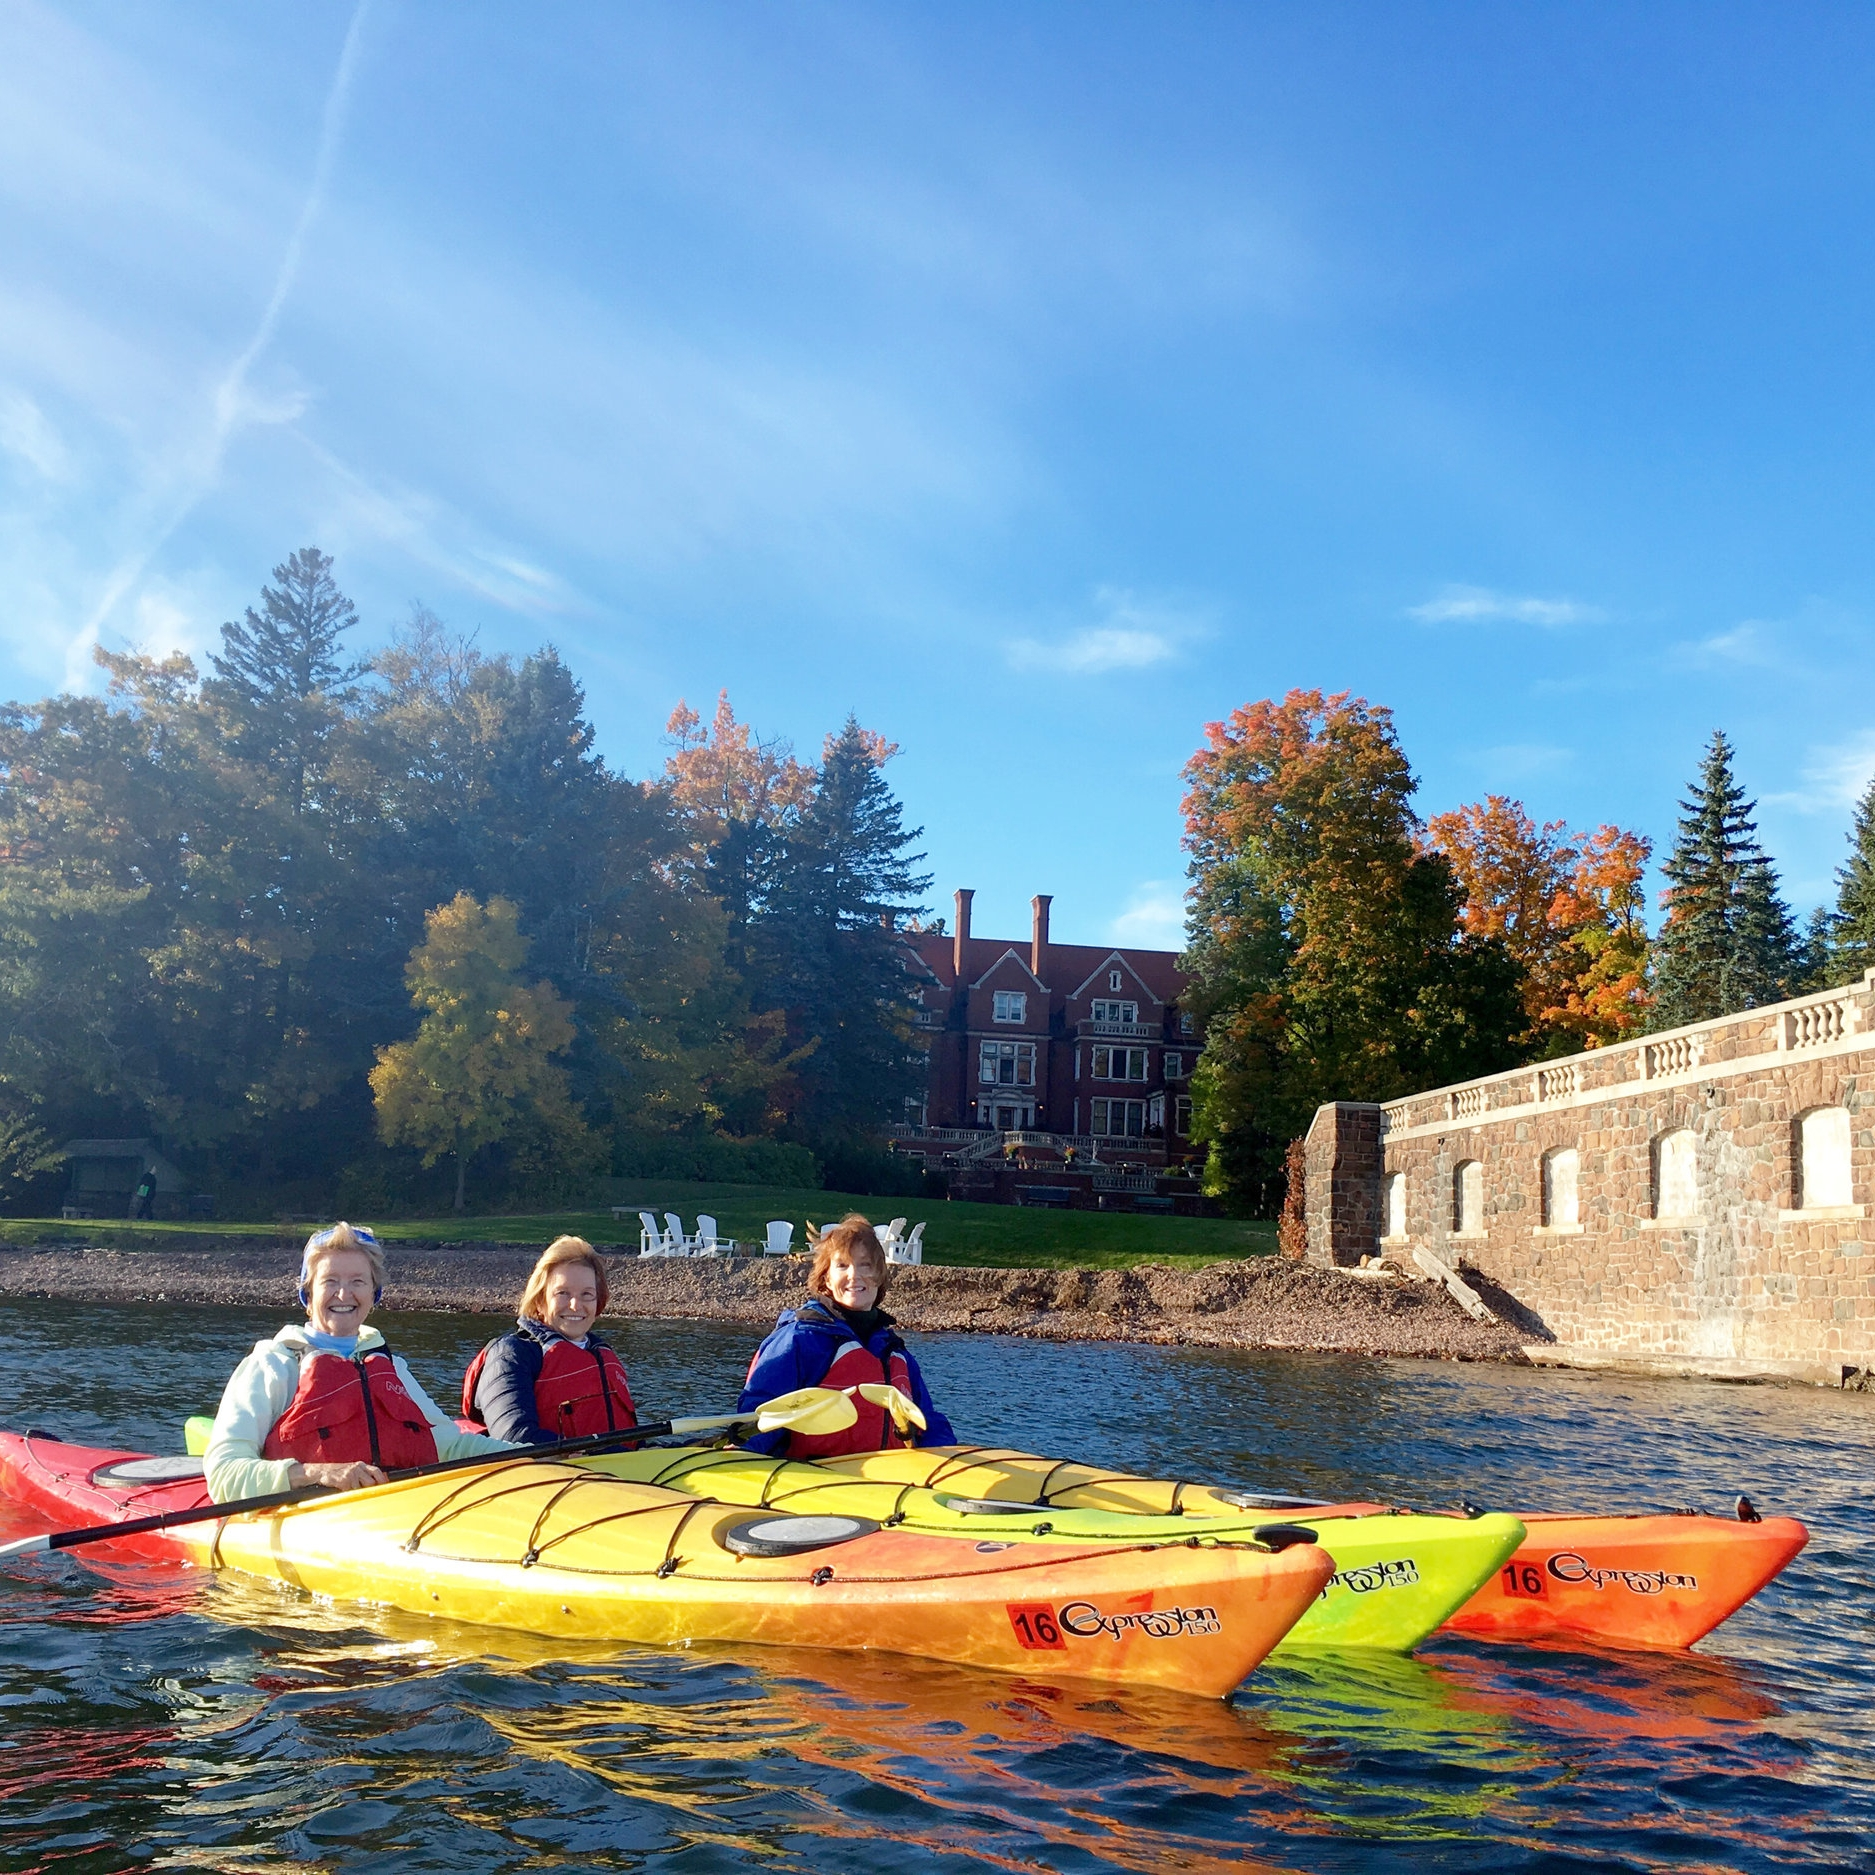 Glensheen Kayak in the Star Tribune - Read about our Glensheen kayak tour and other awesome things Duluth has to offer.